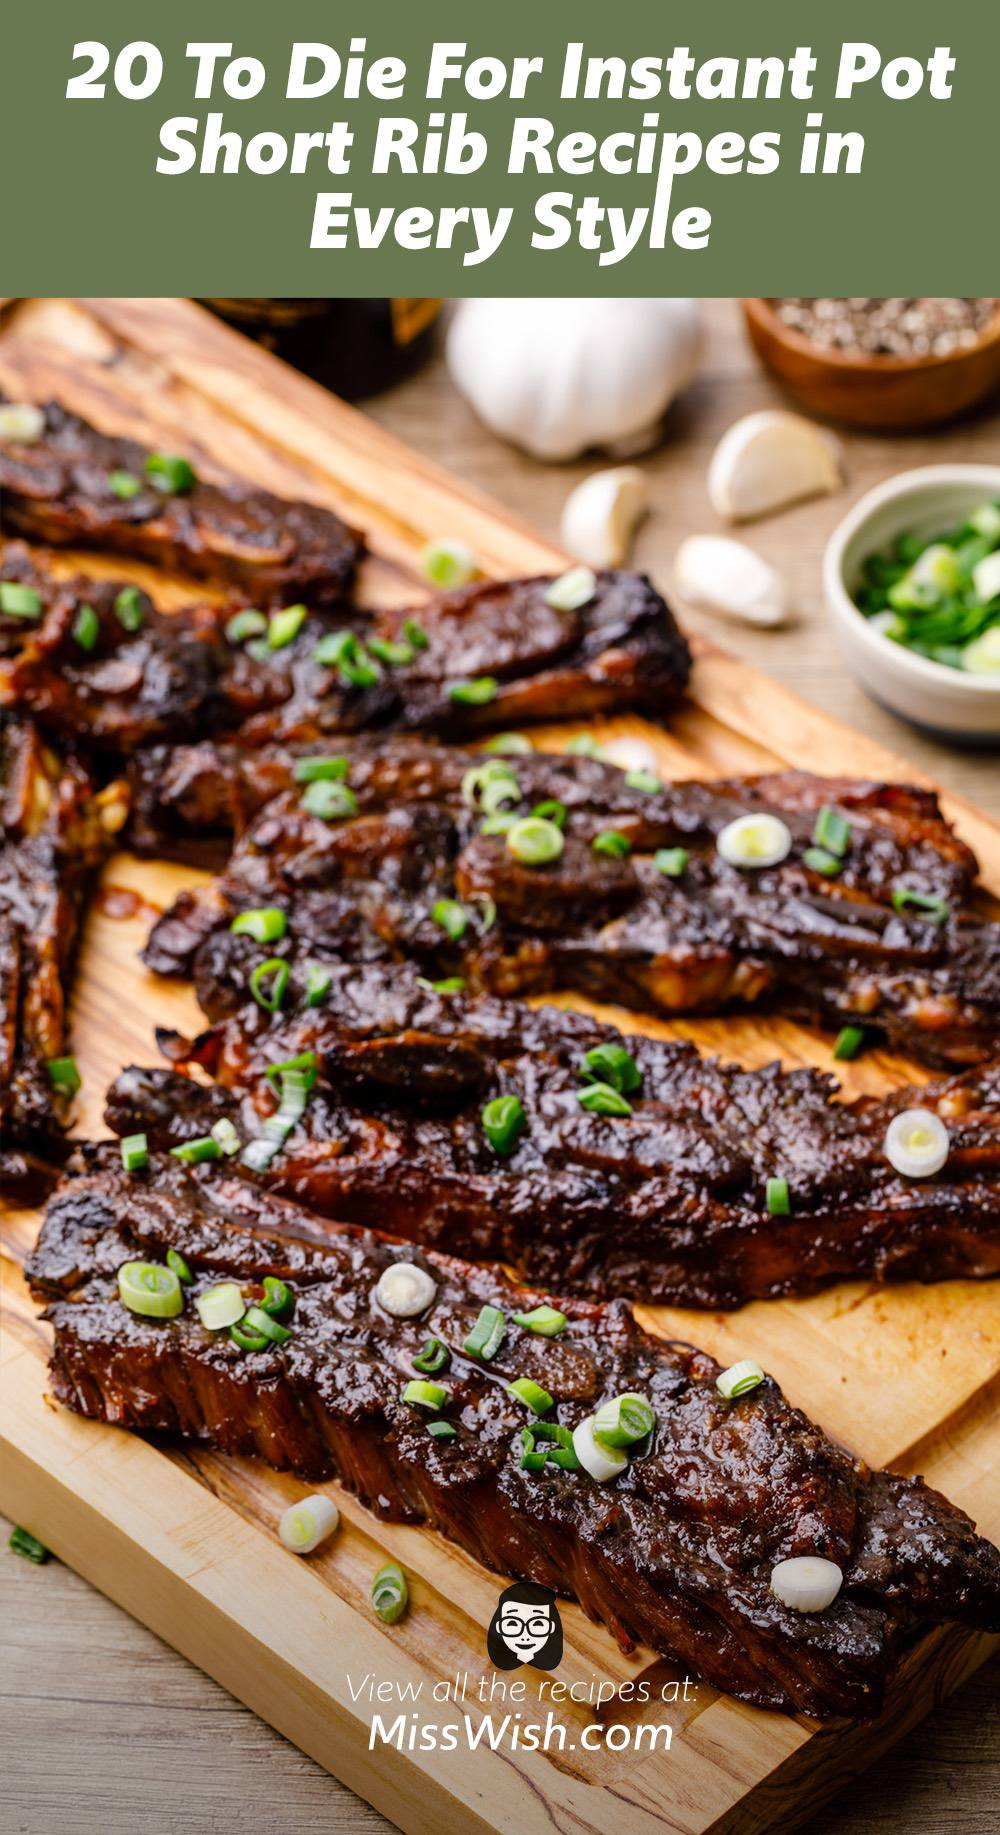 20 To Die For Instant Pot Short Rib Recipes in Every Style